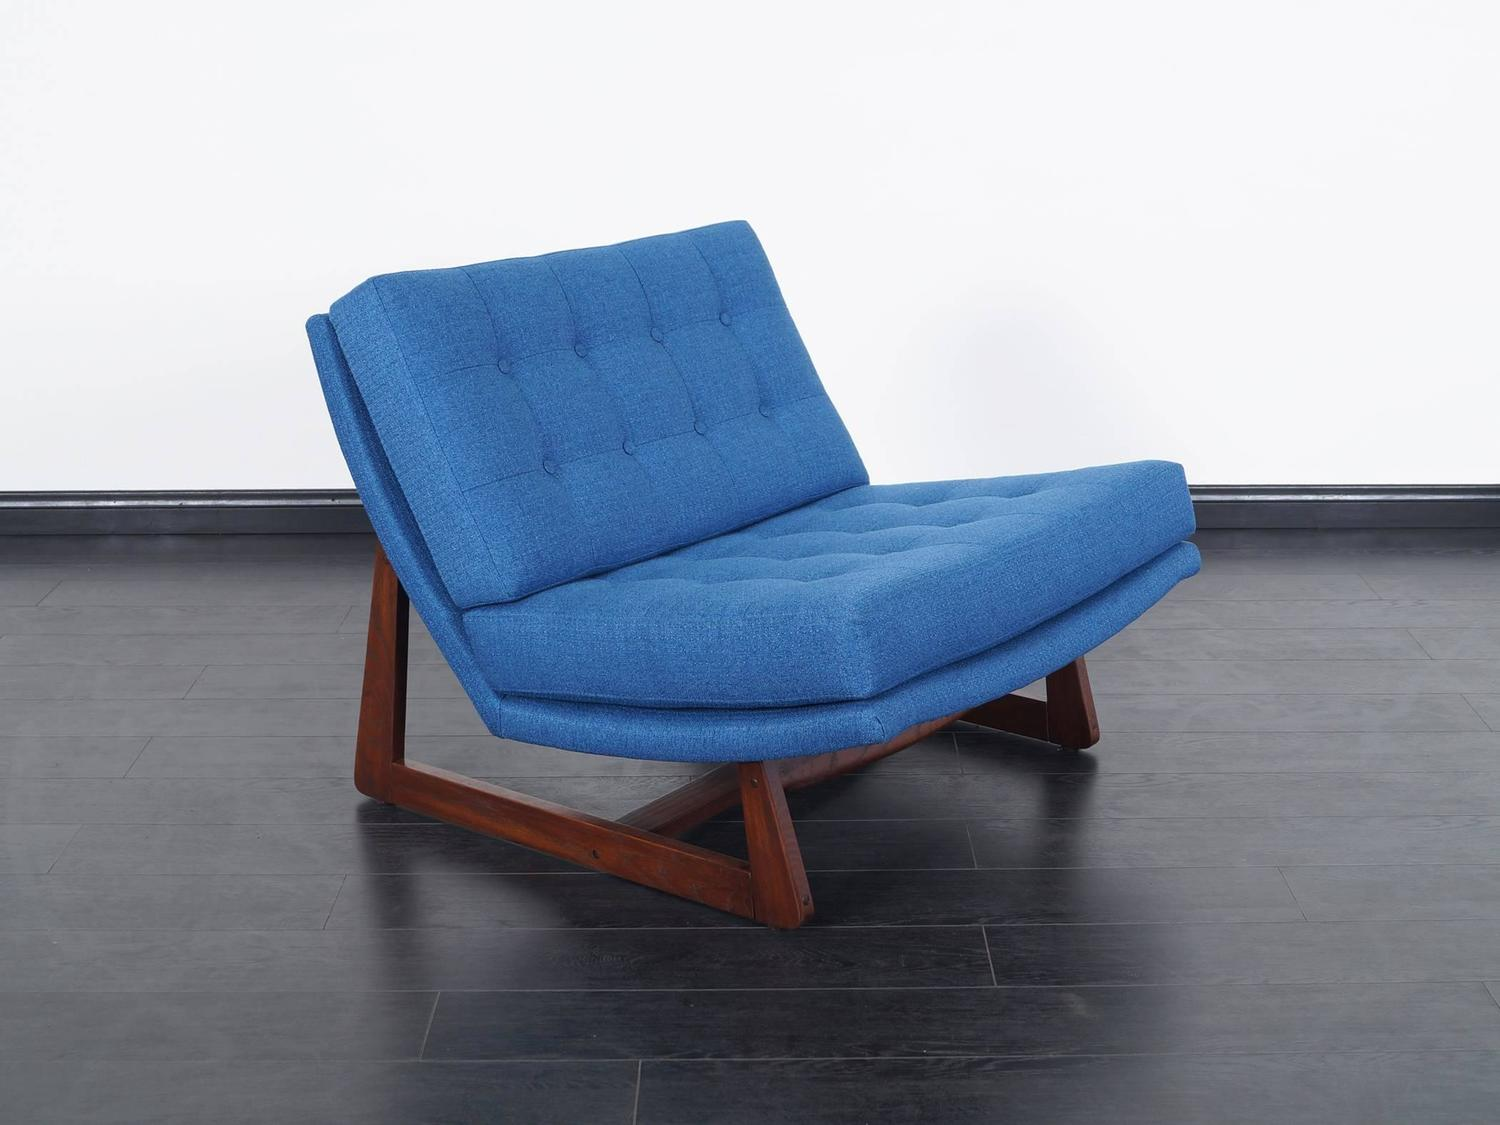 Vintage Tufted Lounge Chairs For Sale at 1stdibs